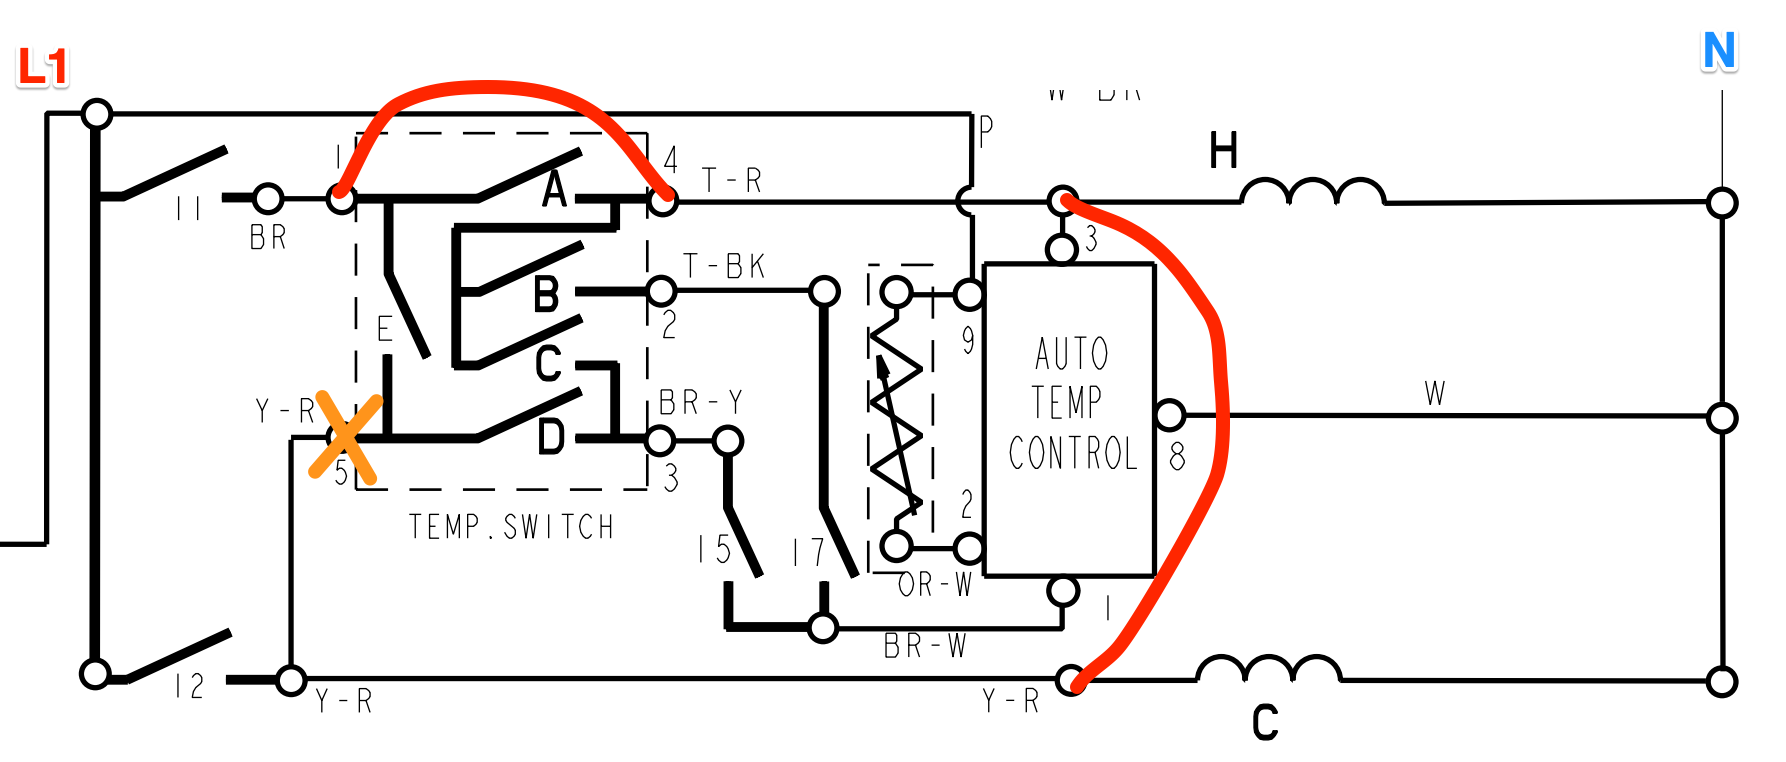 Bypassing the Auto Temp Control on a Whirlpool Washer